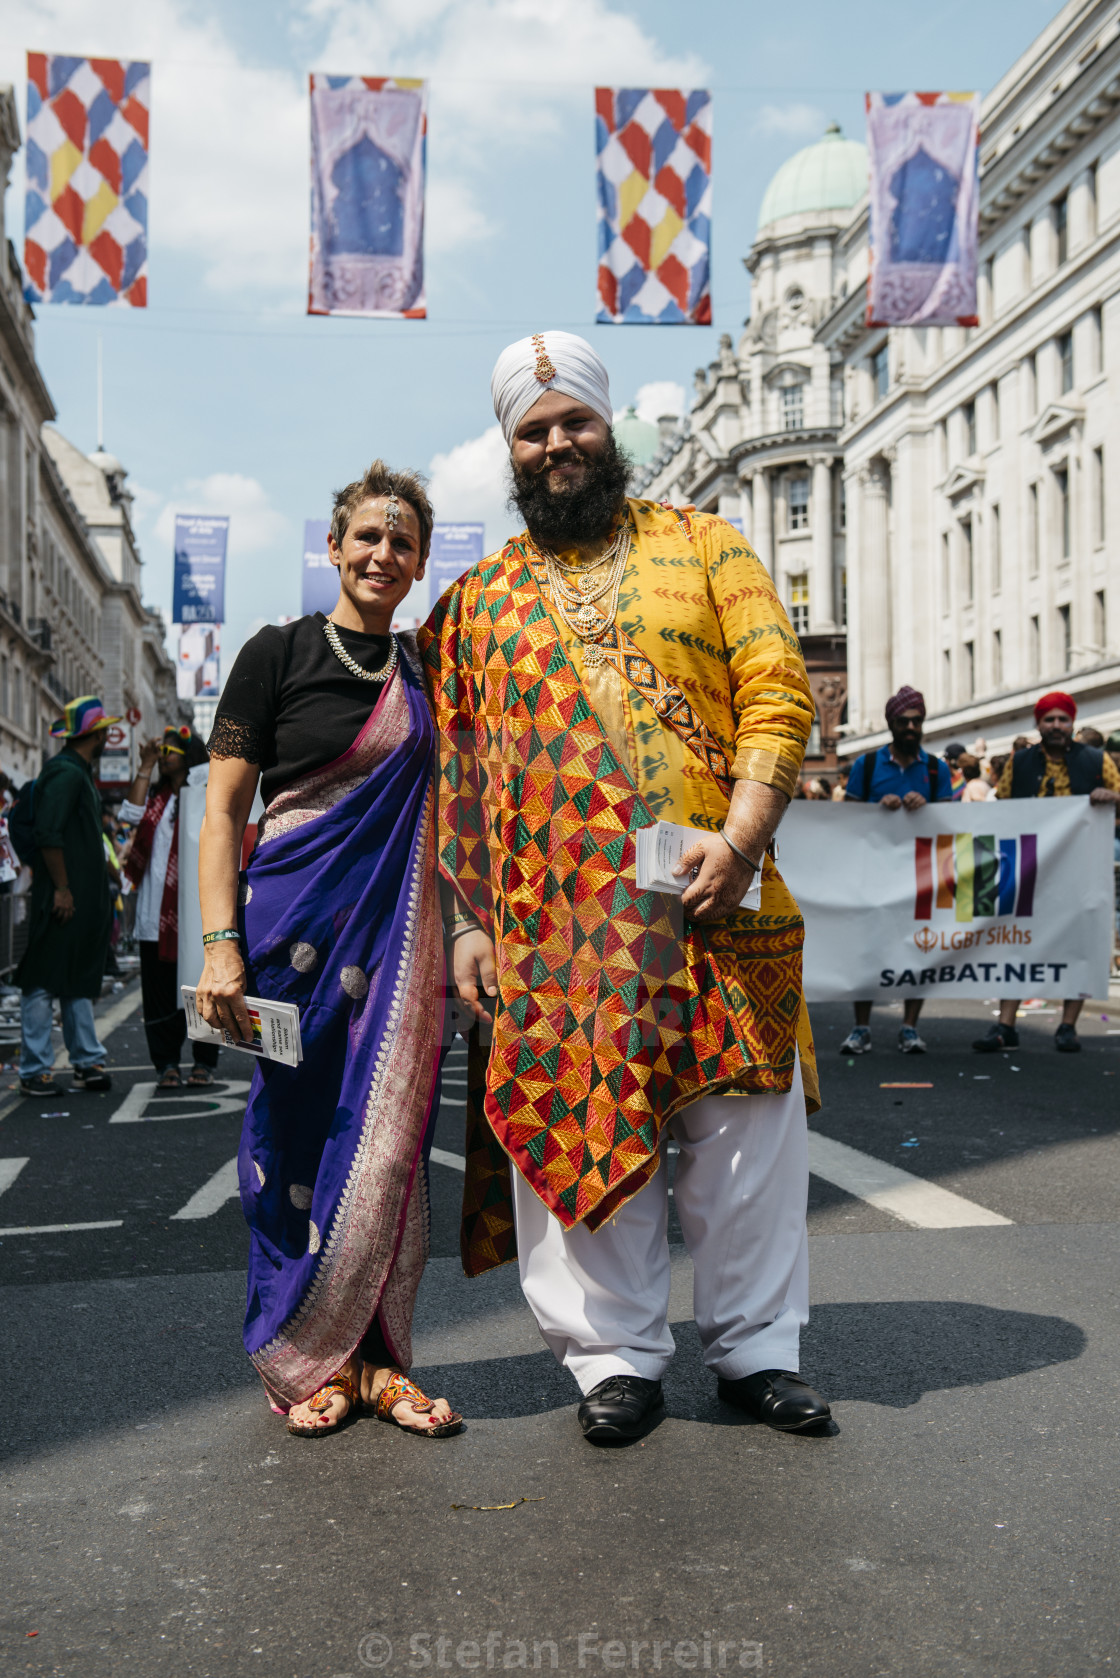 """London Pride '18 [10]"" stock image"